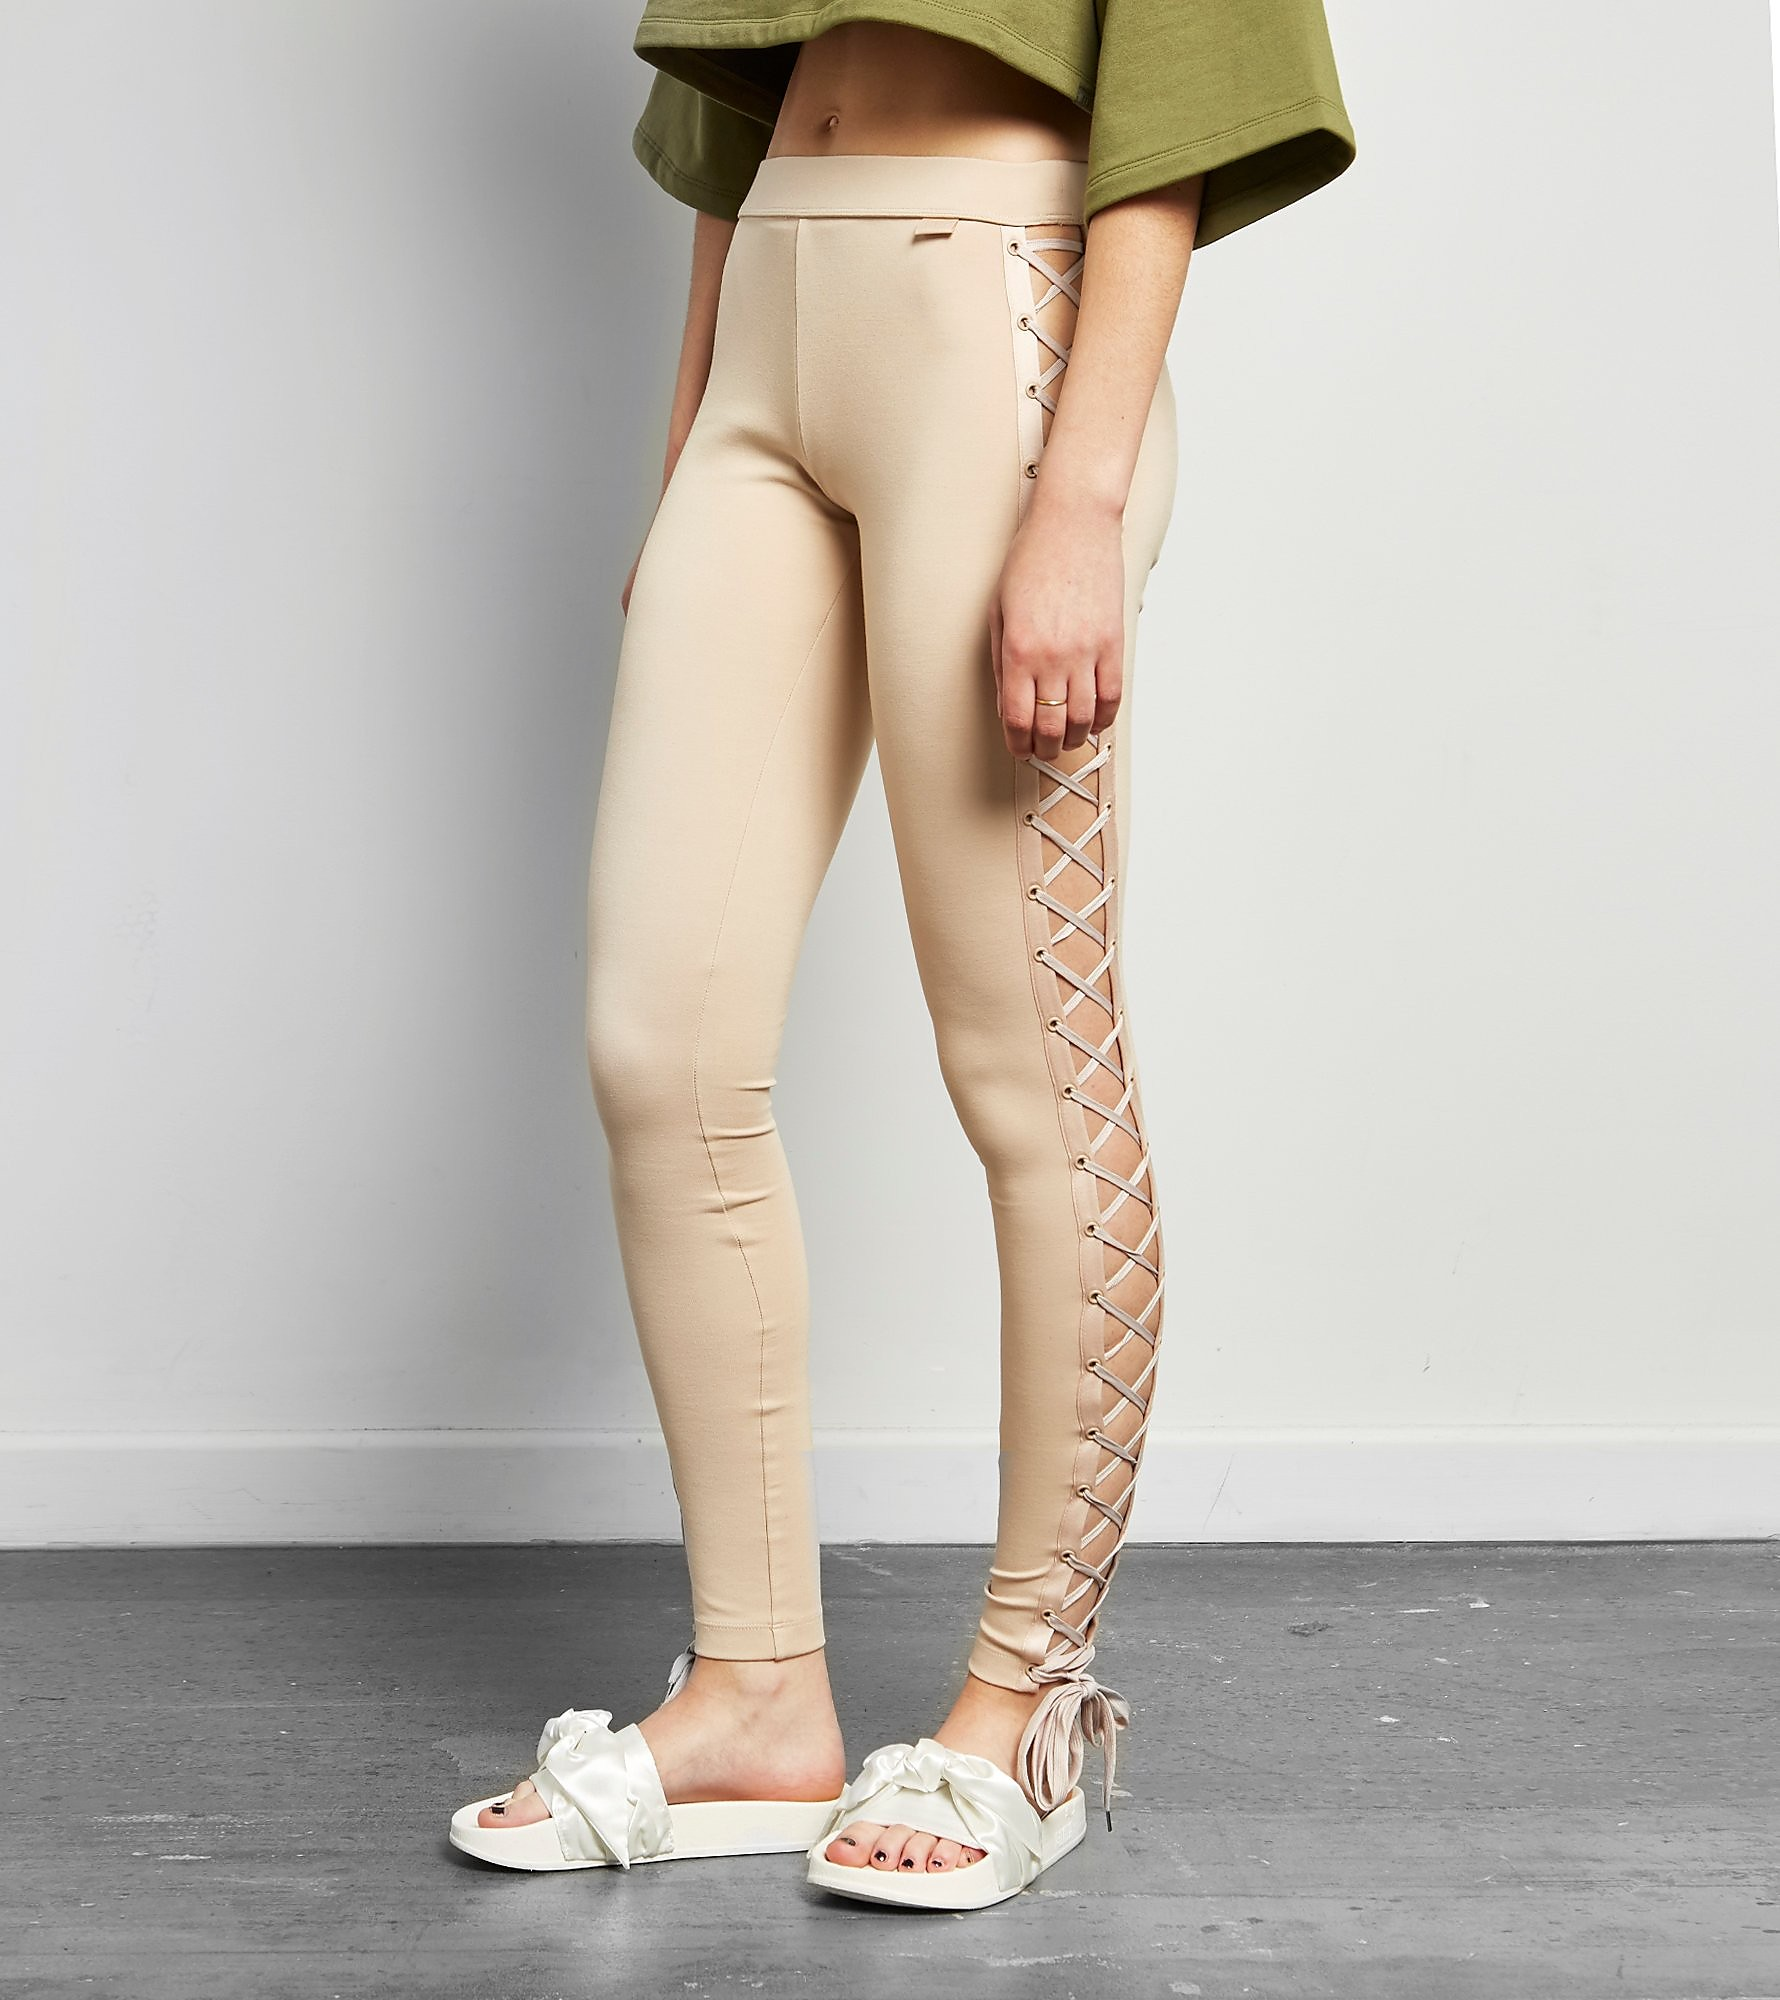 PUMA x Fenty Lace Tights